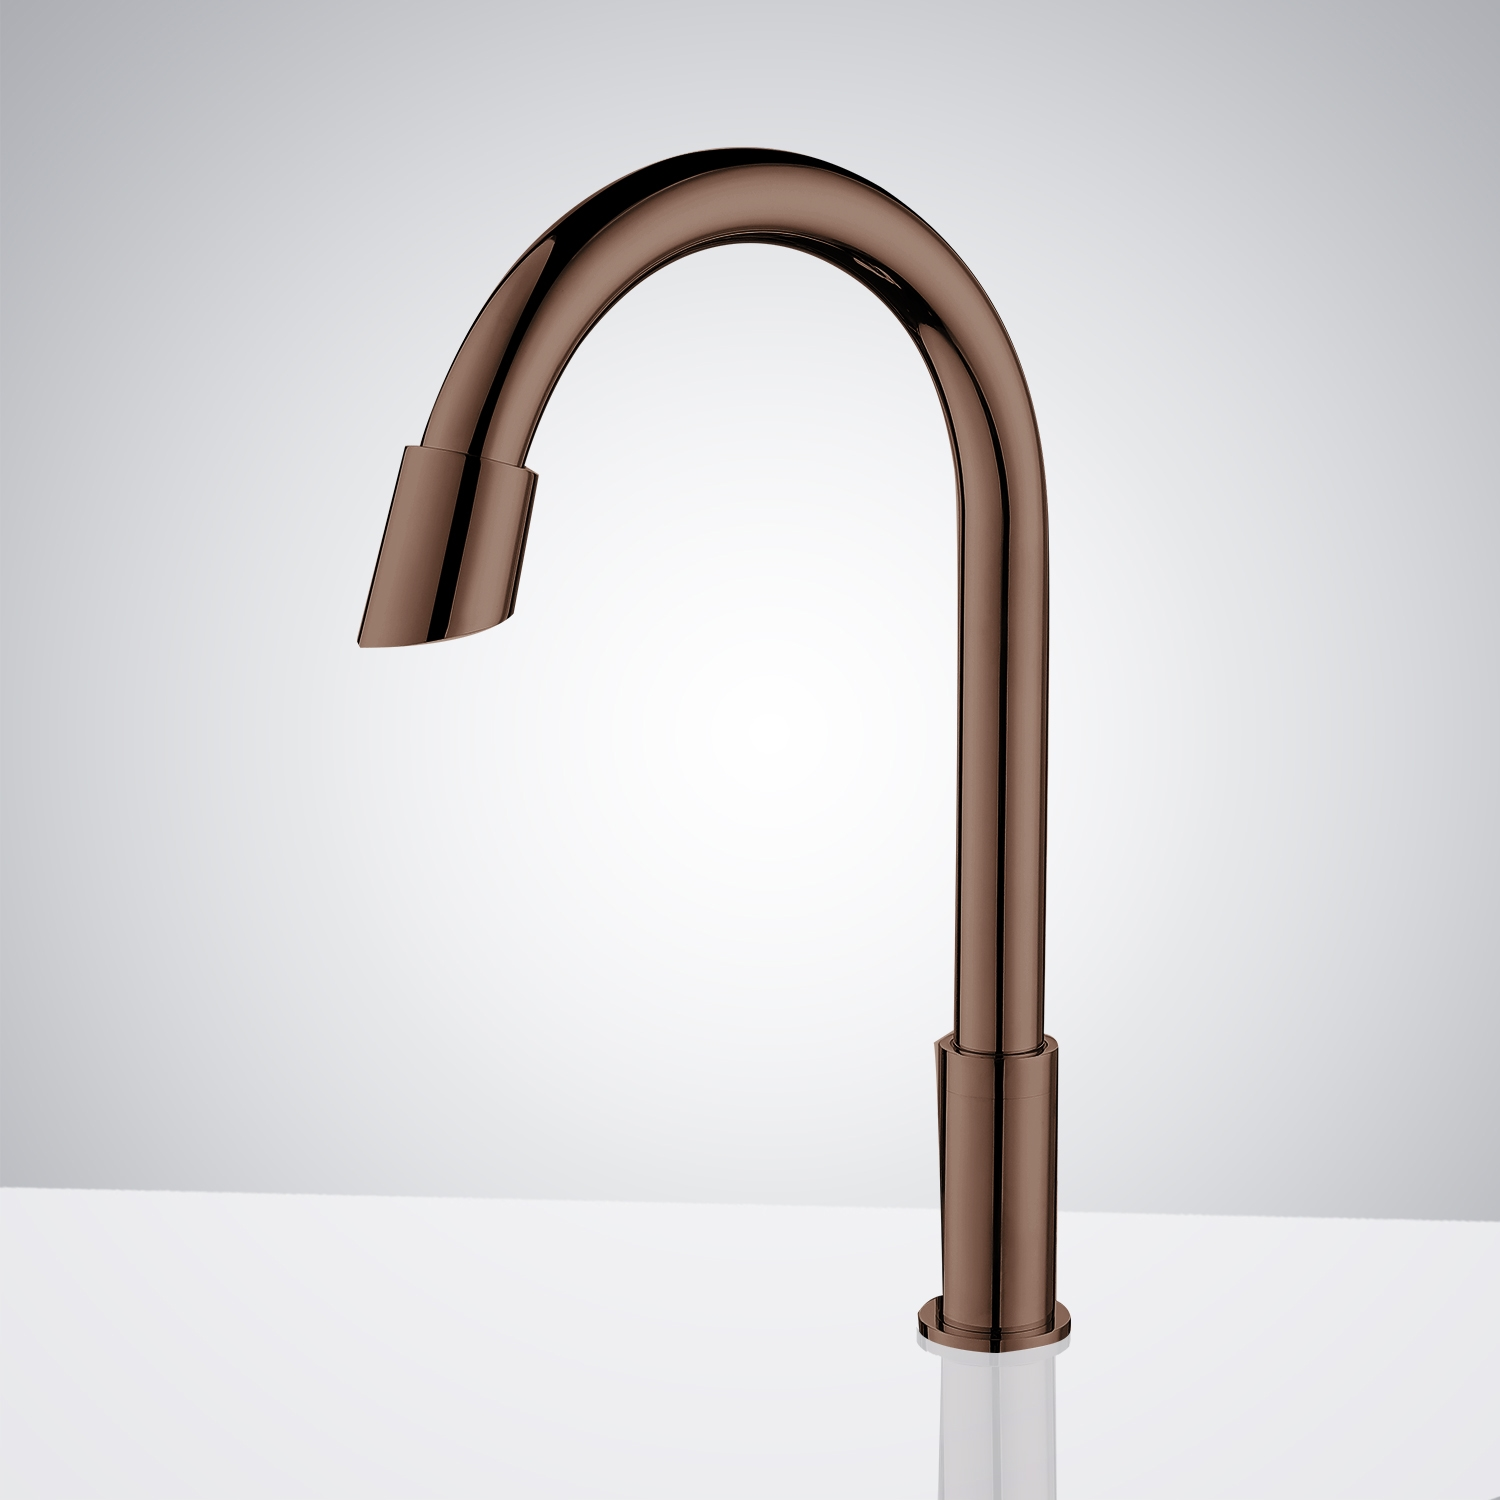 free automatic chrome finish cold contemporary sink faucet sensor features bathroom hands